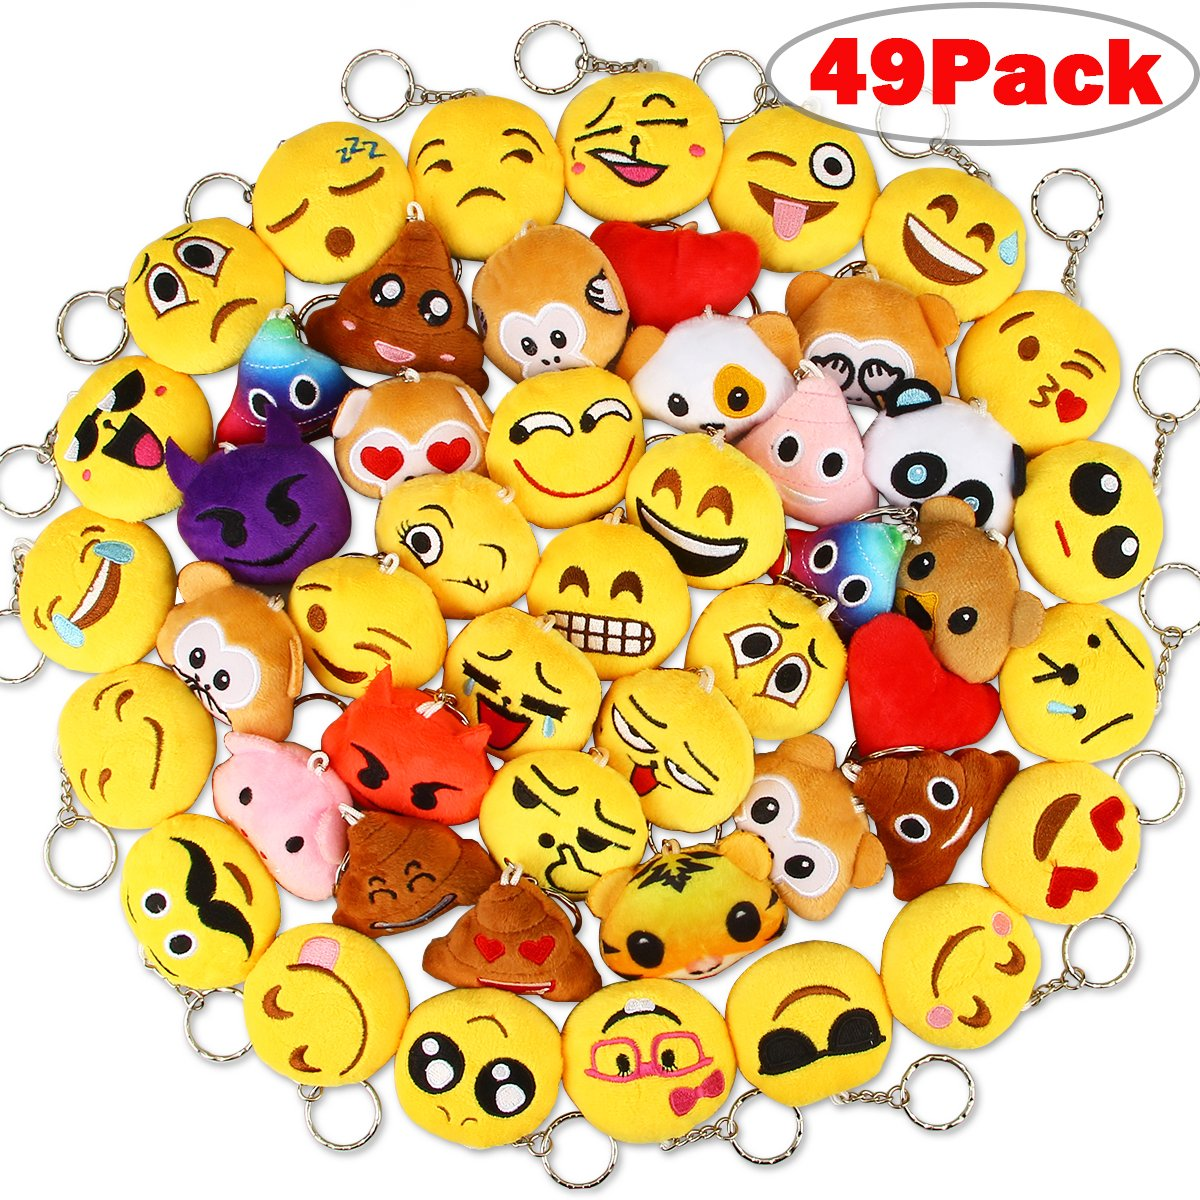 Christmas Emoji.Dreampark Christmas Emoji Keychain Plush Mini Emoji Party Supplies 49 Pack Emoji Plush Keychains For Kids Party Favors Easter Eggs Fillers